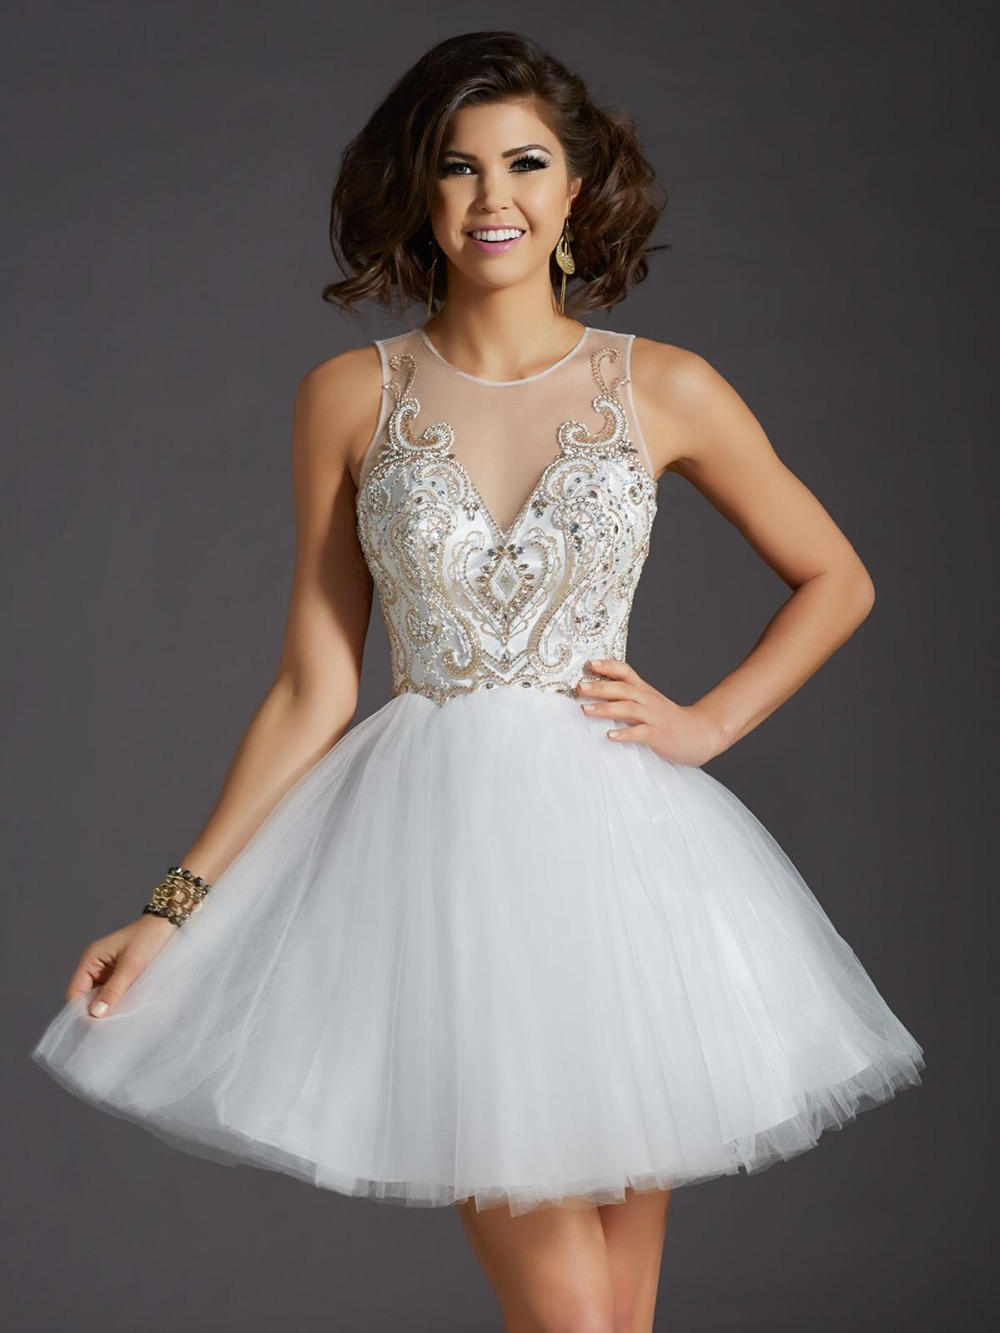 Compare Prices on Back Gold Sequin Prom Dress- Online Shopping/Buy ...